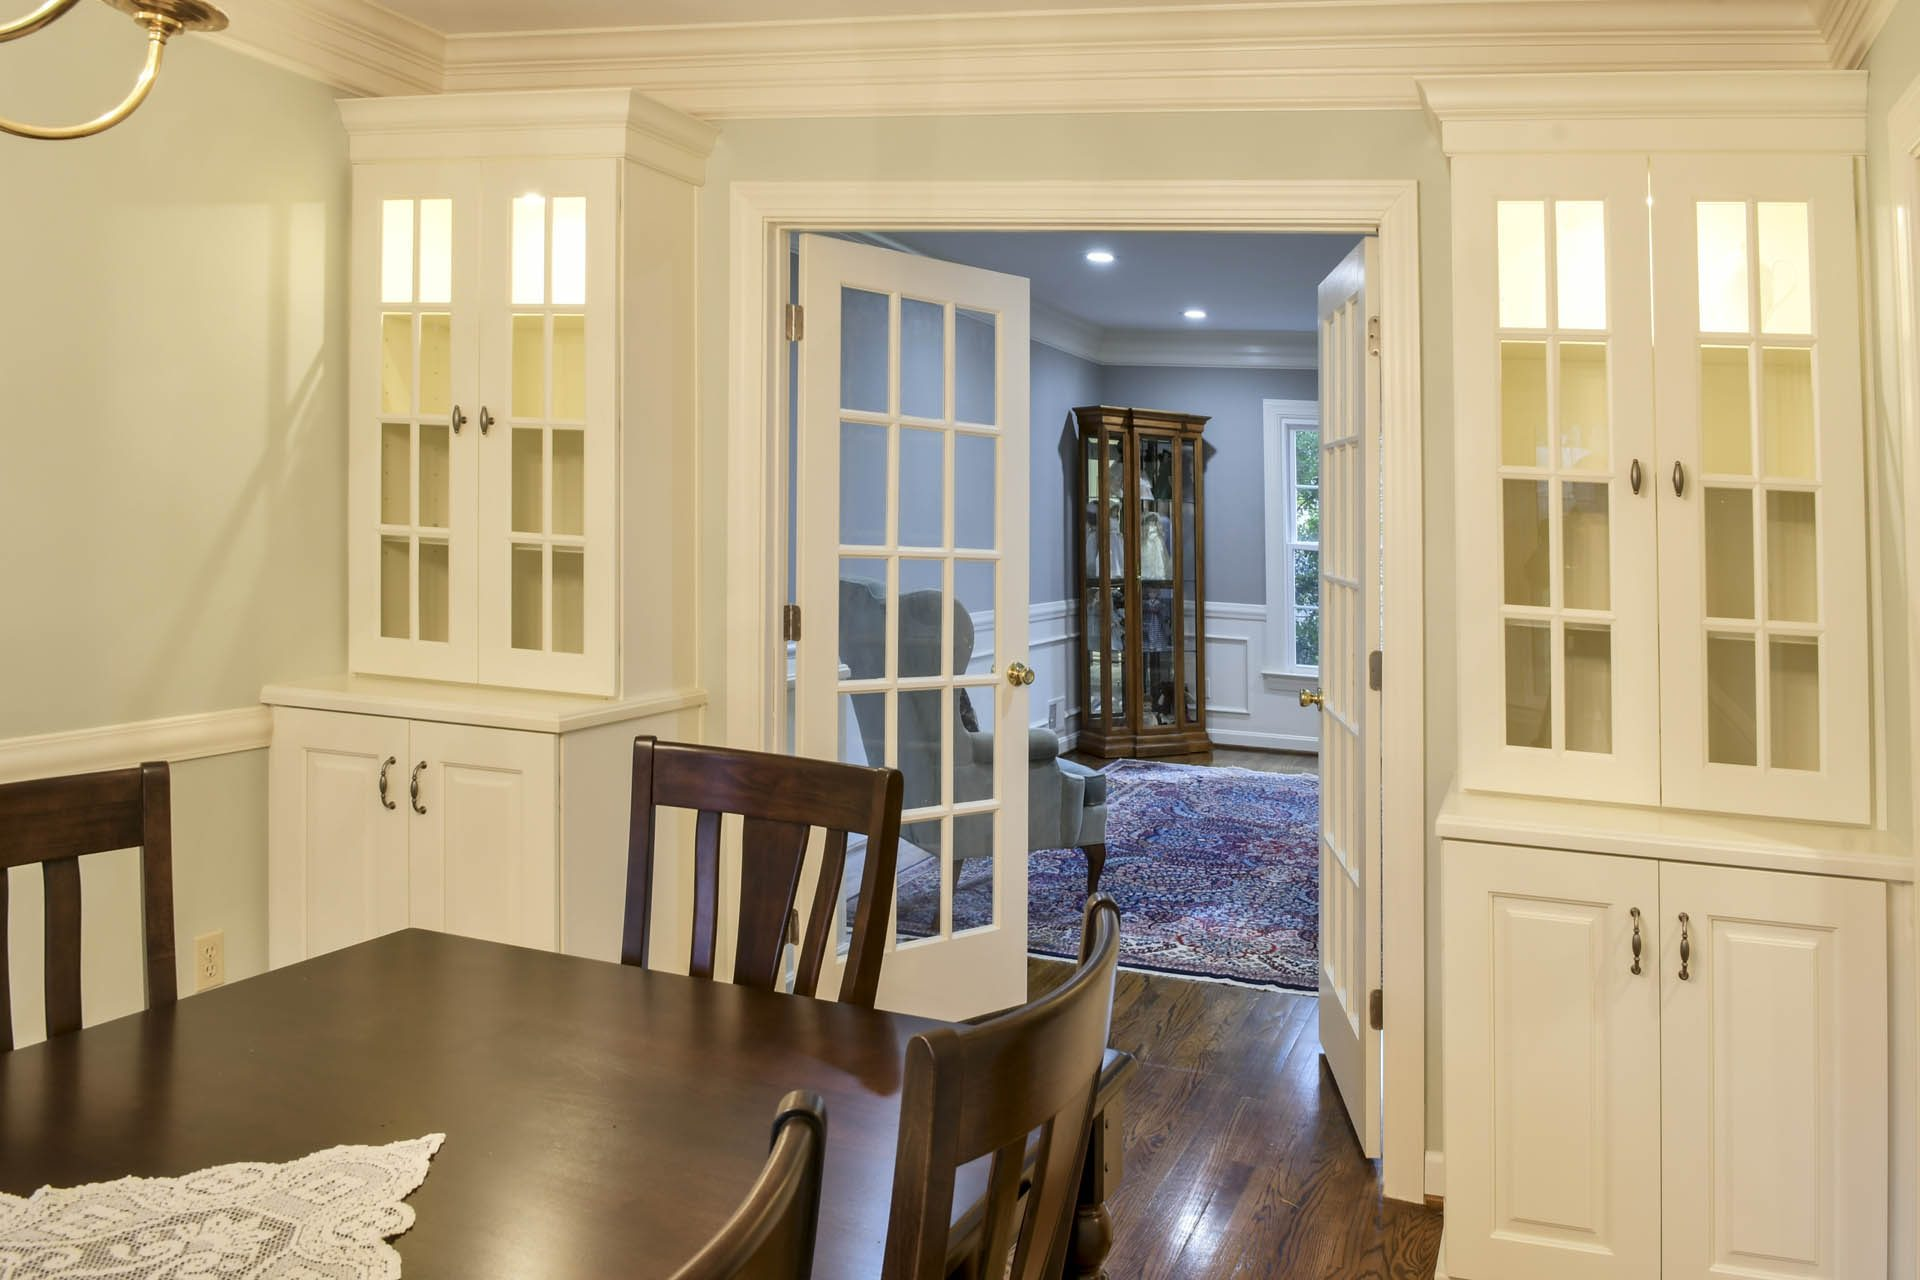 Louisville Kentucky Interior Design, Living Spaces By Lyn, Kitchen Design, Kim Falvey, Dining Room, Custom Built In China Cabinets, Dining Room Furniture, French Doors, Hardwood Flooring, Area Rug